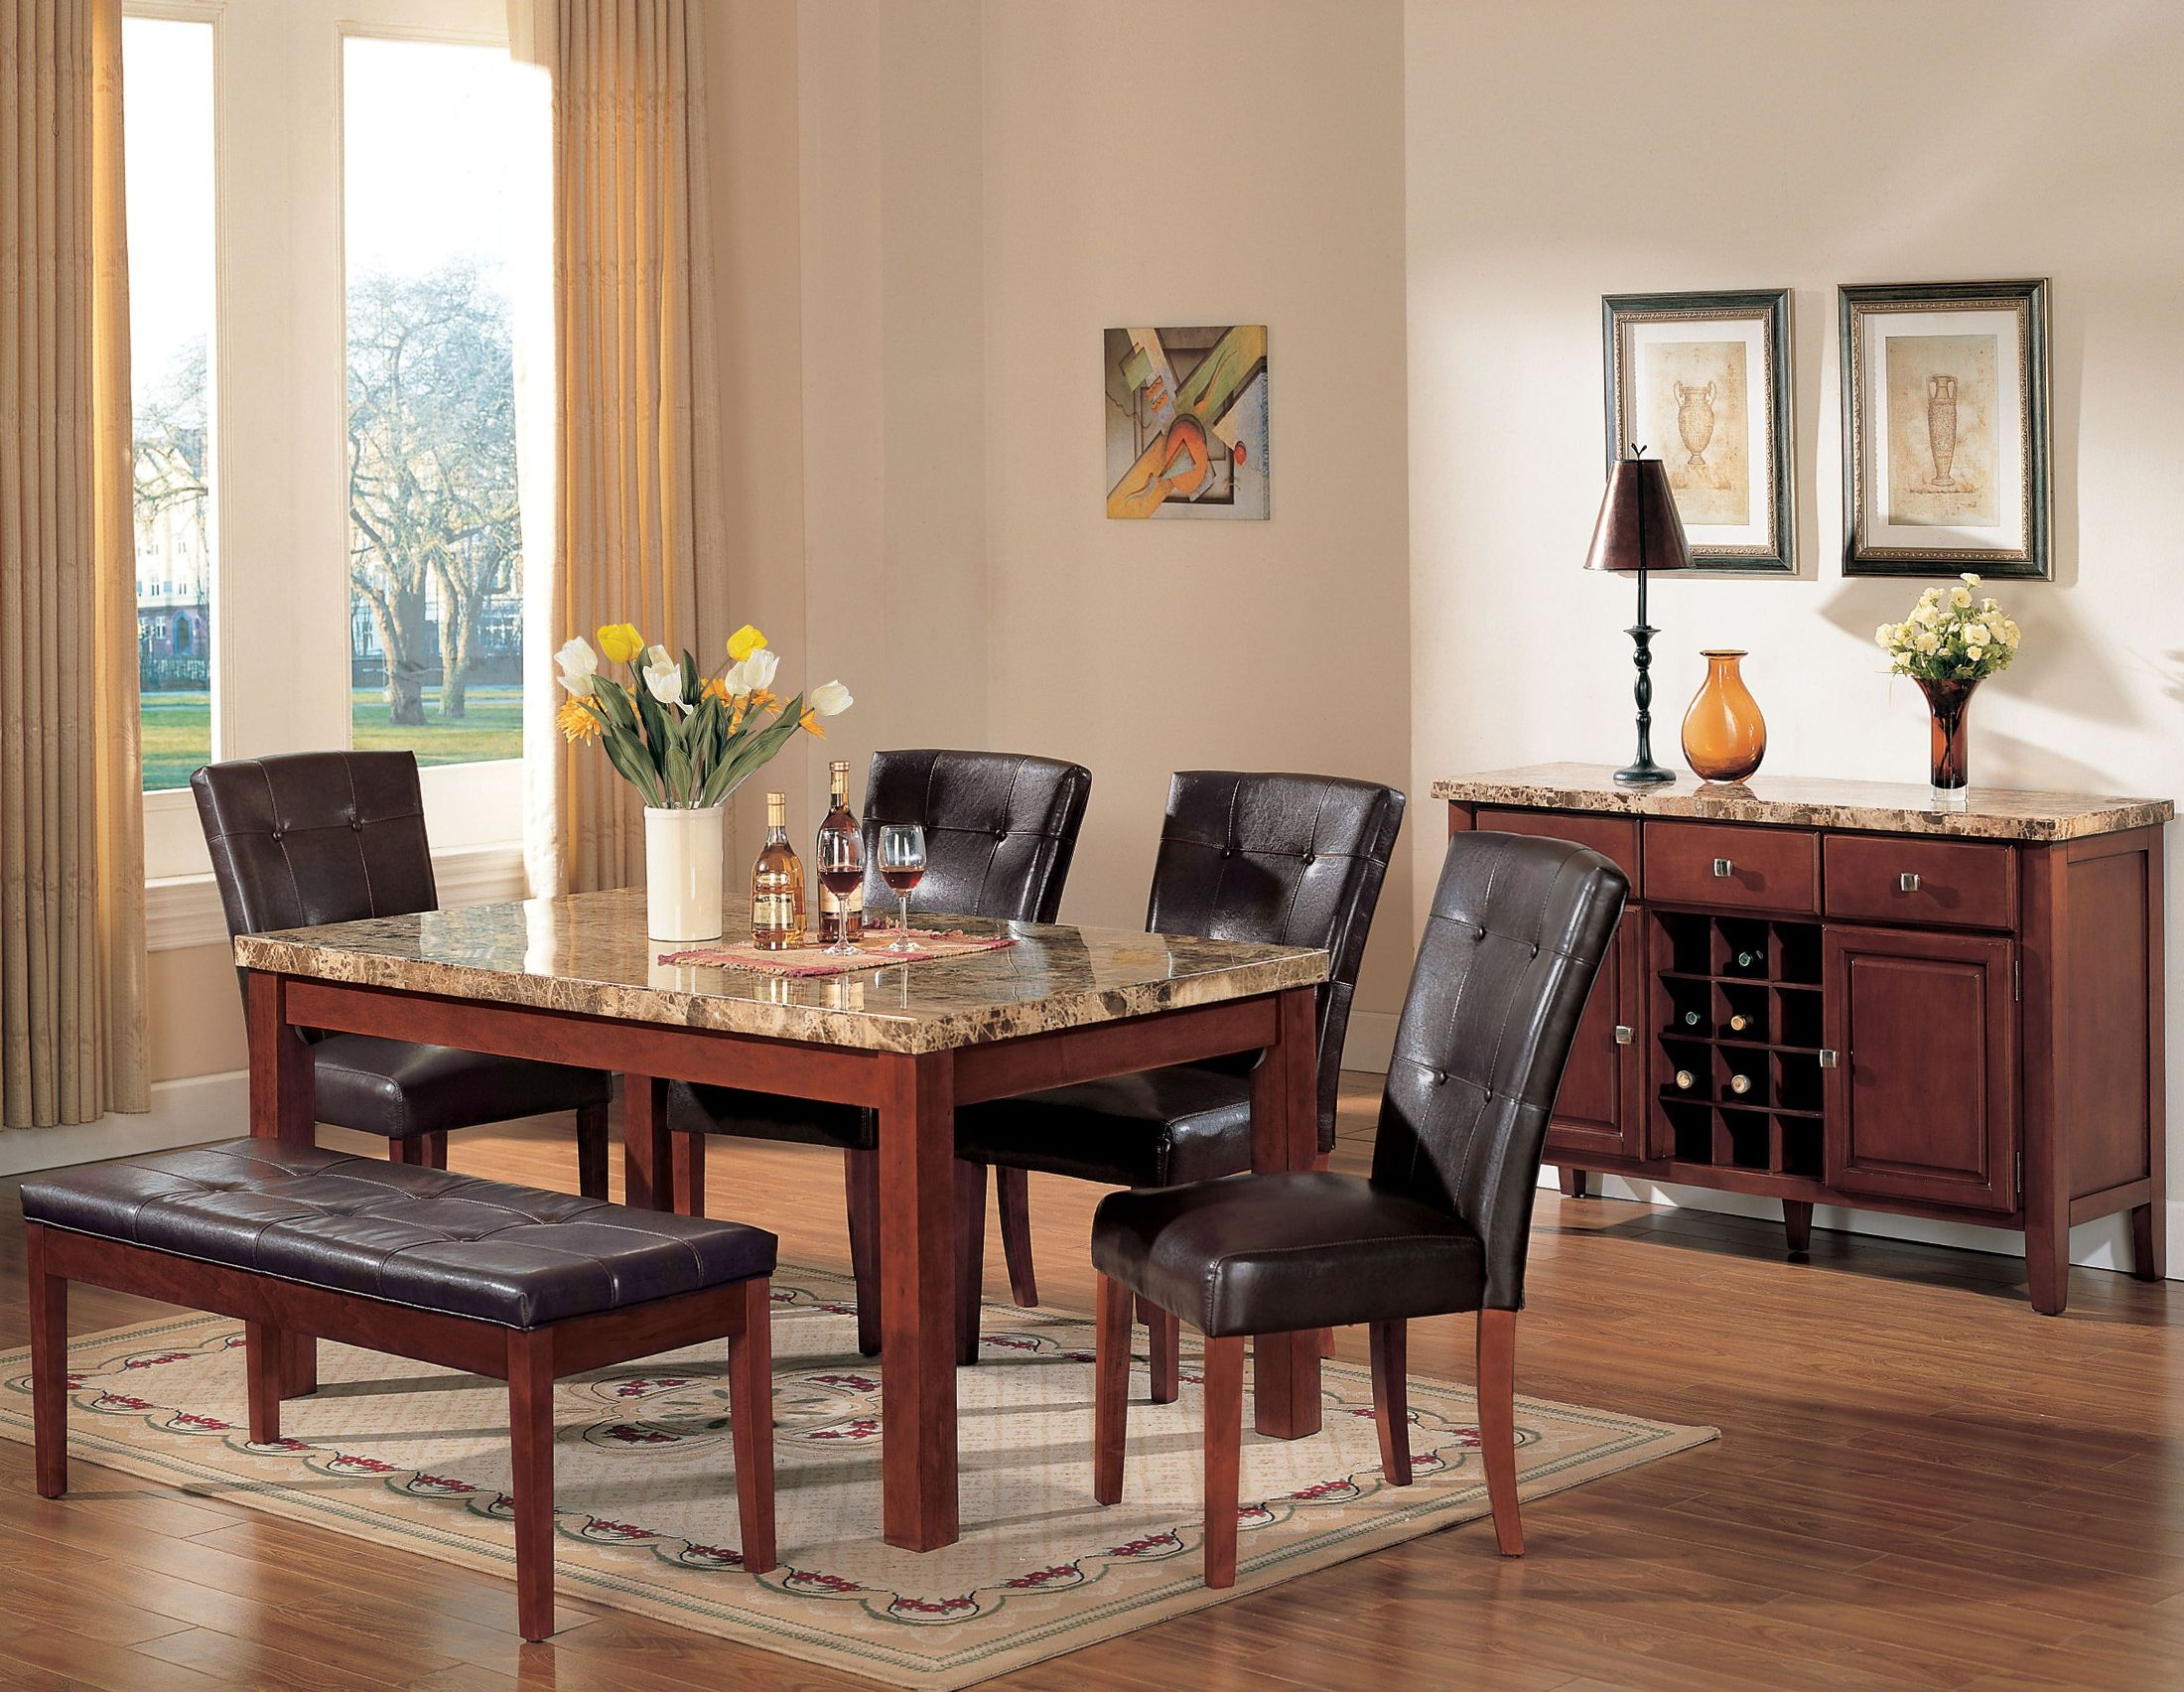 Bologna Brown Marble And Brown Cherry Dining Room Set With Regard To Most Recent Montalvo Round Dining Tables (View 17 of 25)